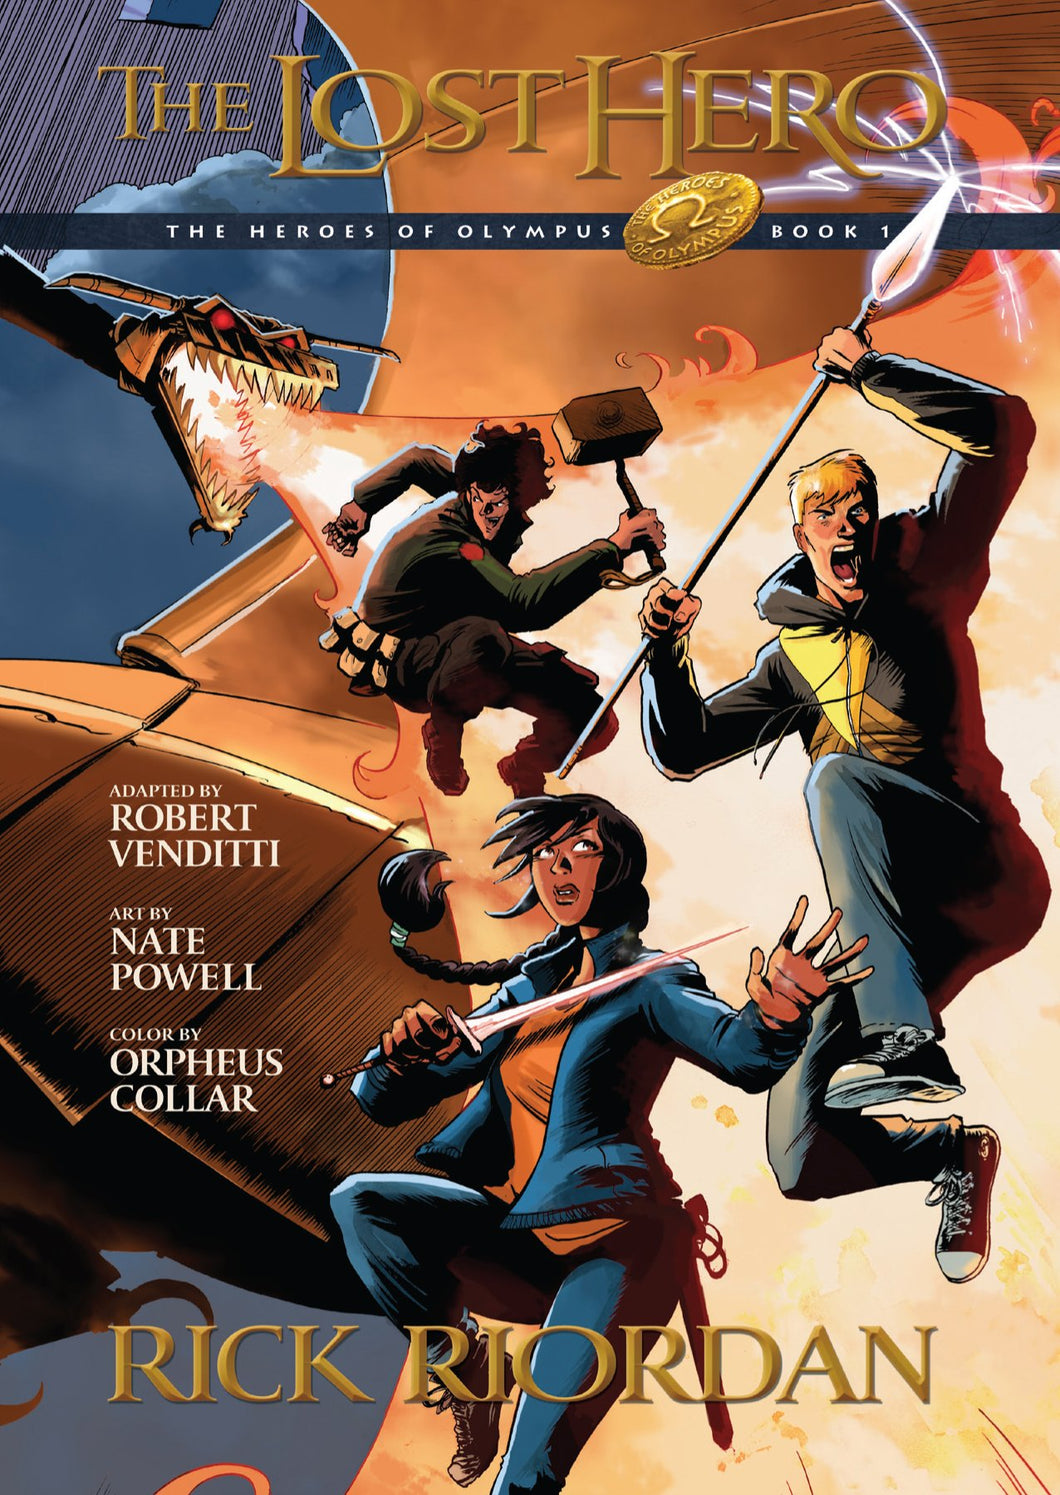 The Lost Hero: The Graphic Novel (The Heroes of Olympus)